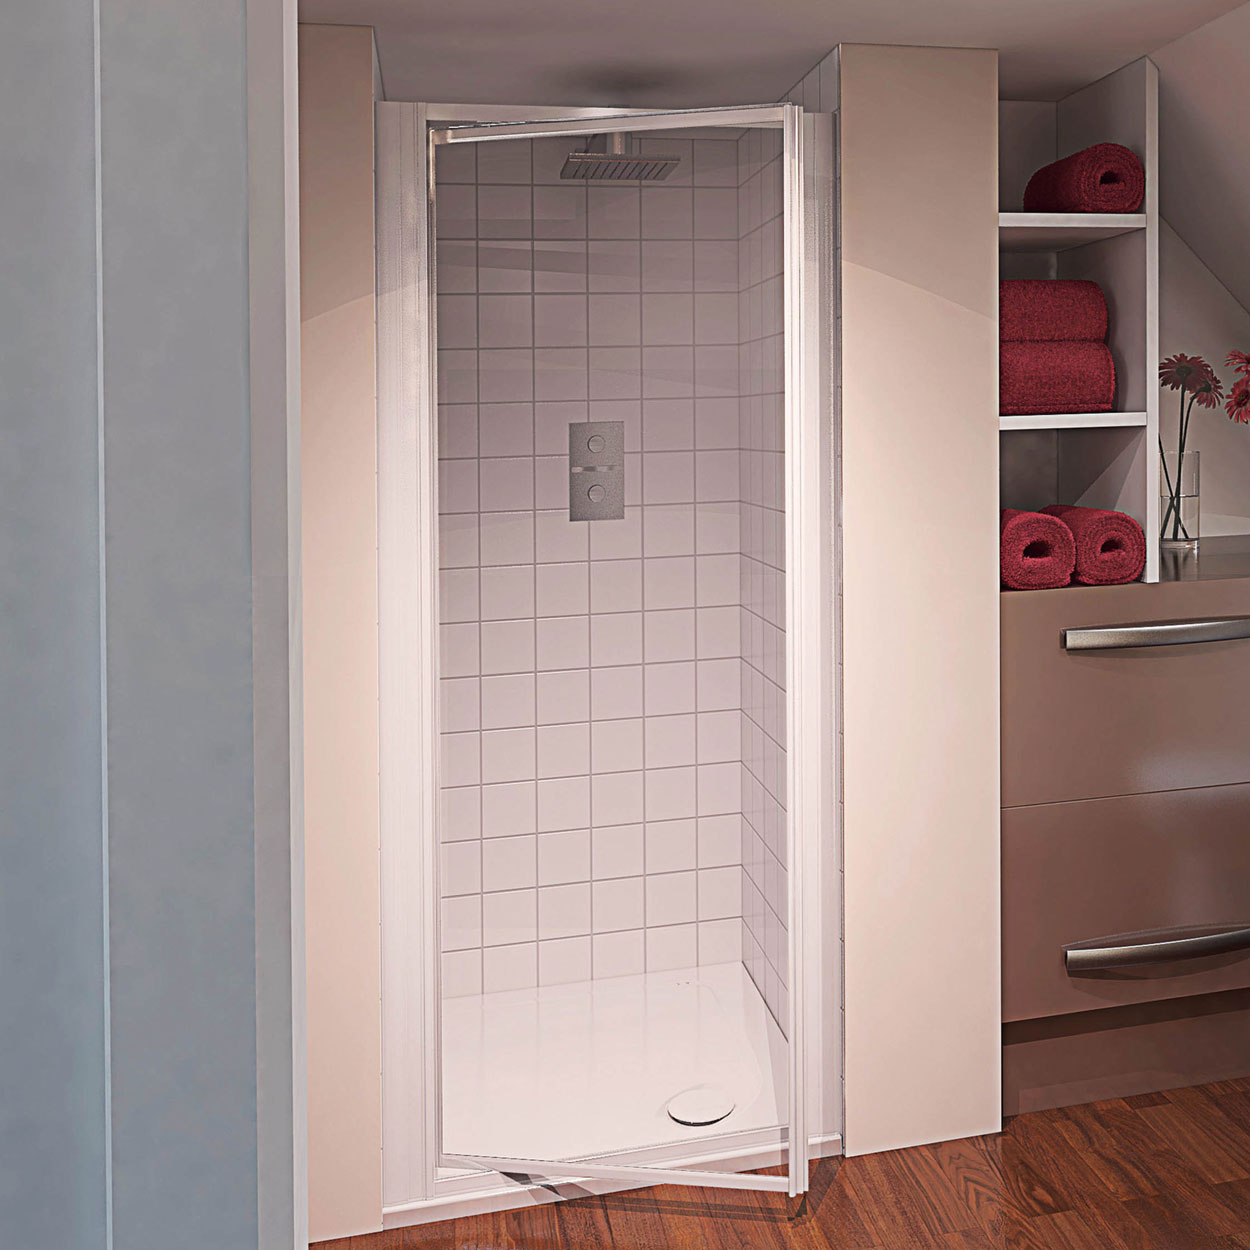 Aqualux AQUA 4 Pivot Shower Door 760mm Wide White Frame - Clear Glass